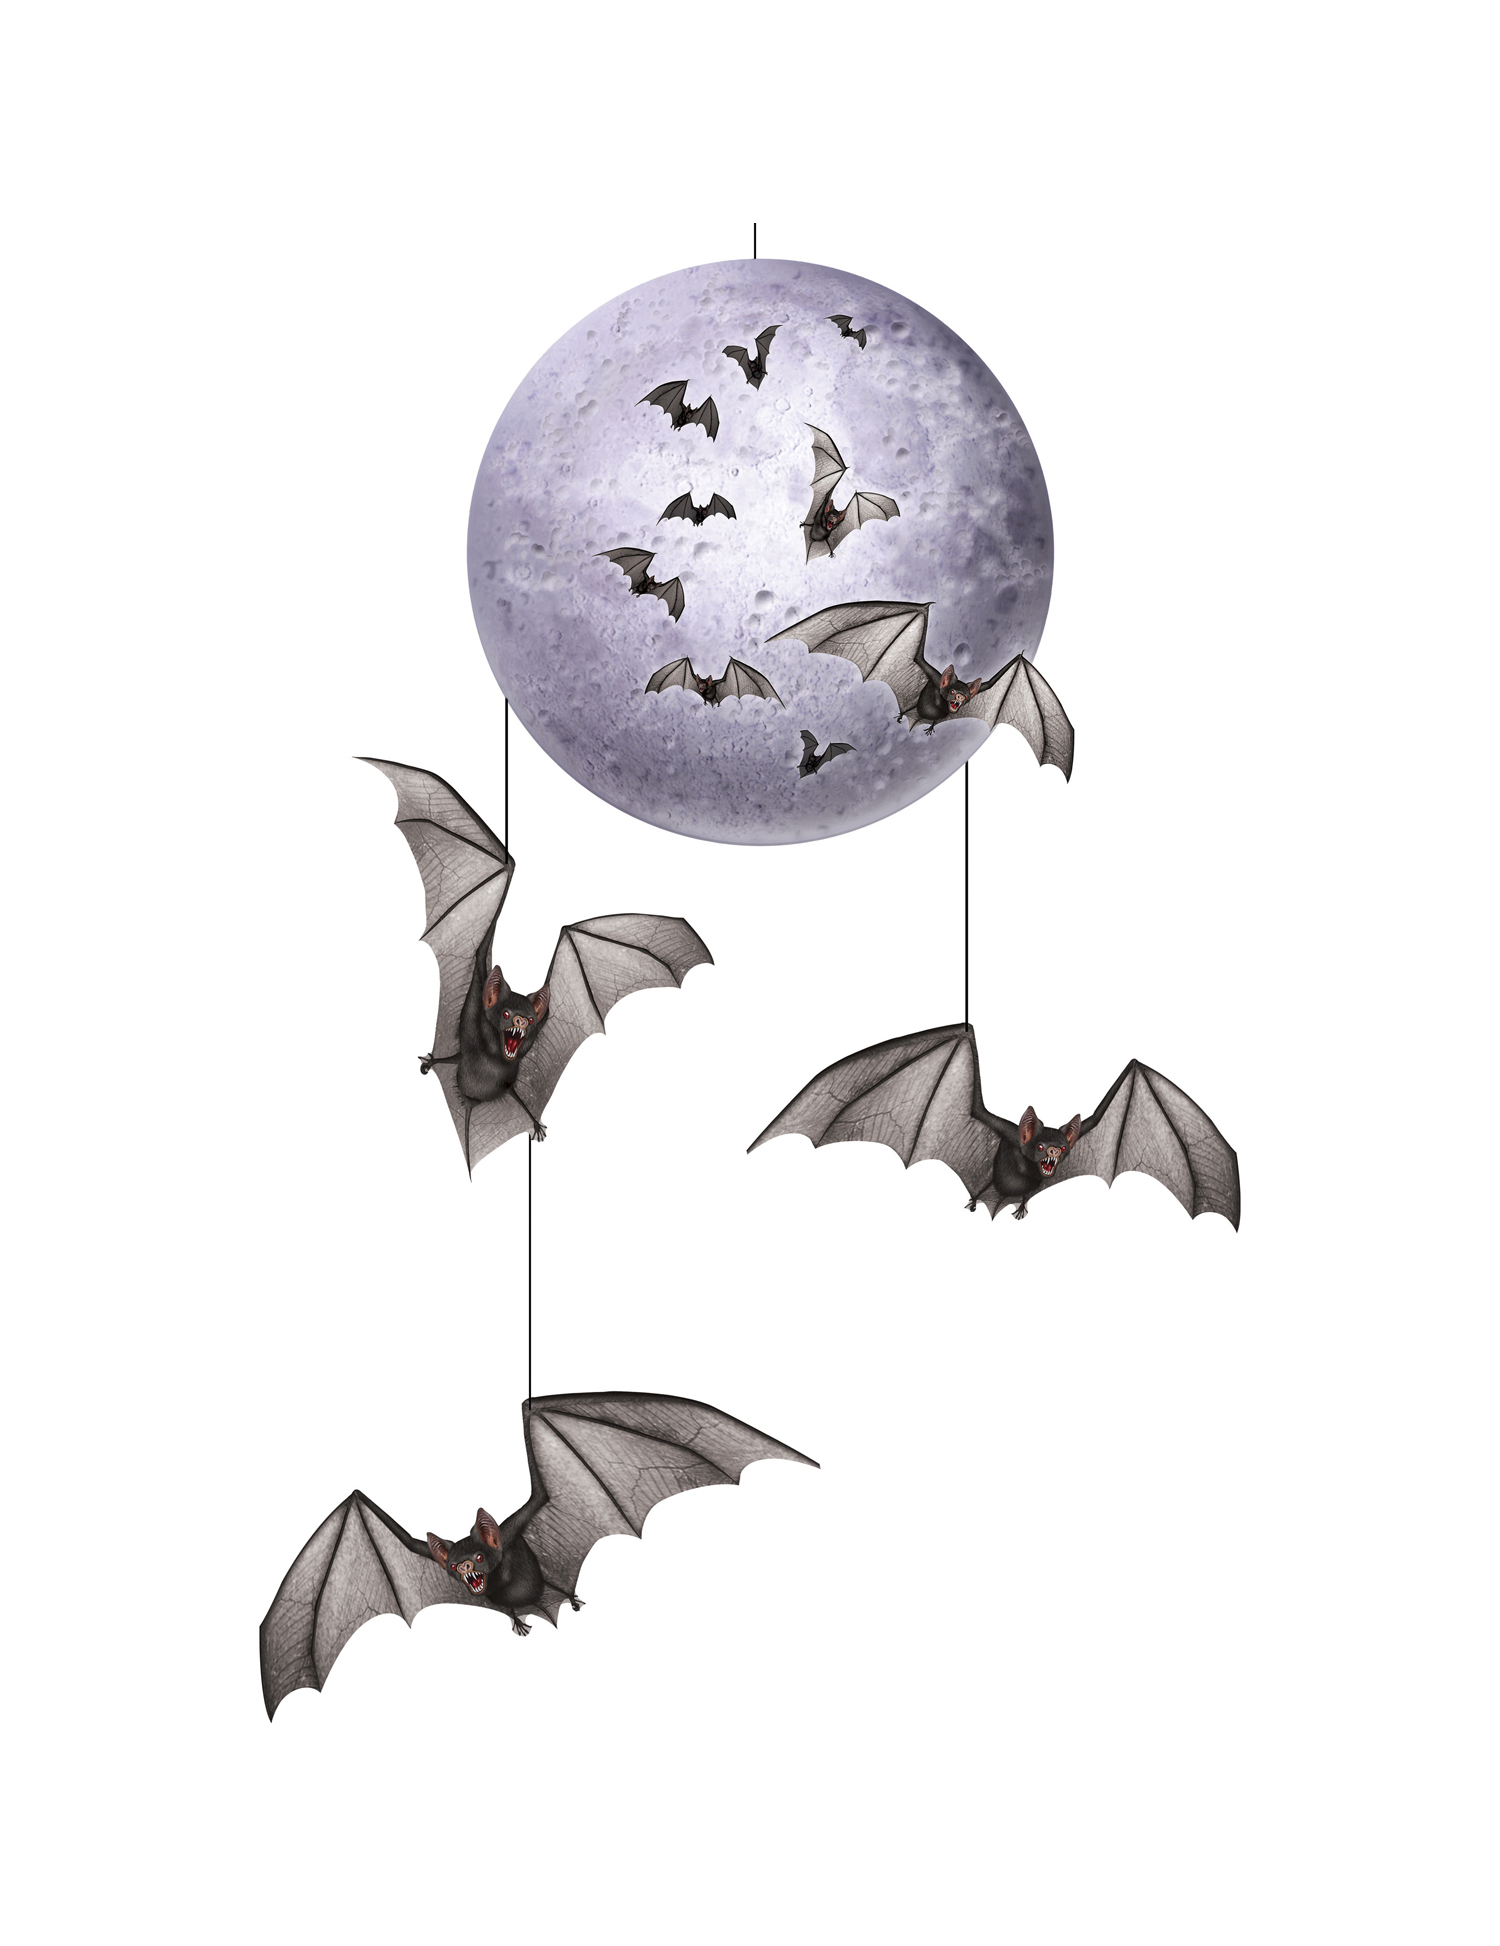 suspension lune chauve souris halloween d coration anniversaire et f tes th me sur vegaoo party. Black Bedroom Furniture Sets. Home Design Ideas